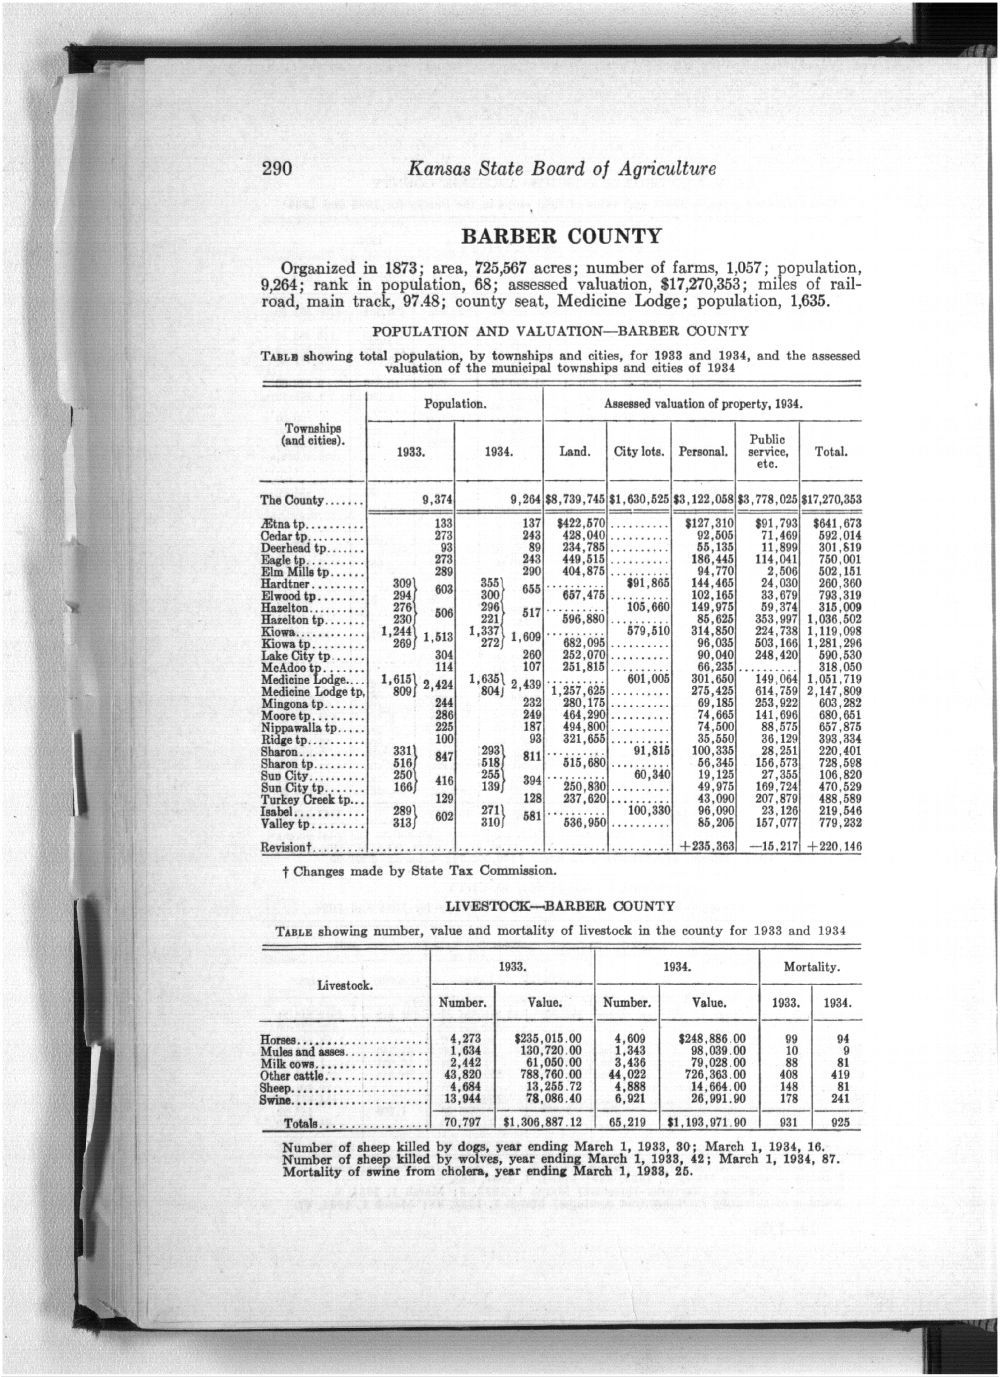 Twenty-ninth Biennial Report, Statistics by county showing population, acreage, production, and livestock, 1933-1934 - 290